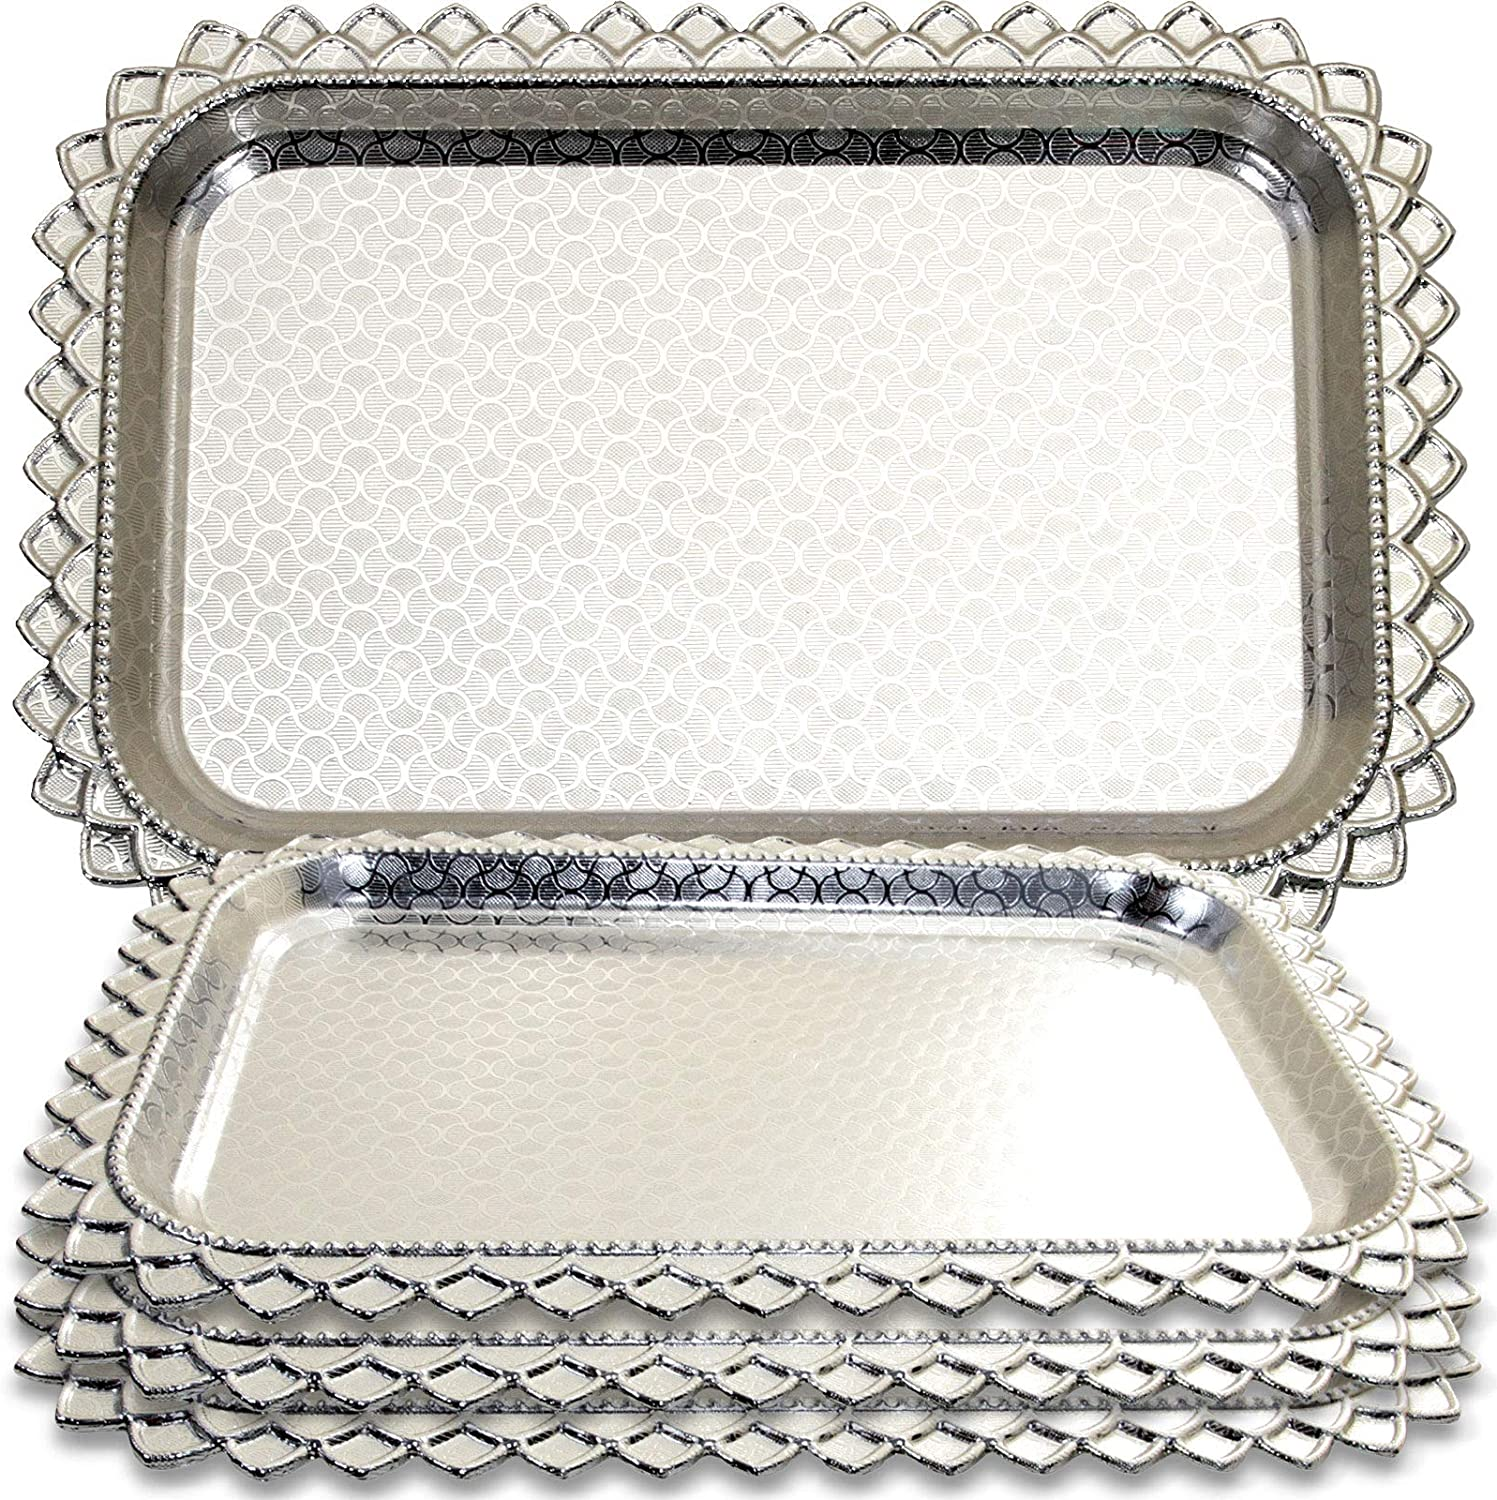 Maro Megastore (Pack of 4 Rectangular Floral Engraved Chrome Plated Mirror Serving Tray Victoria Design Decorative Wedding Birthday Buffet Party Dessert Food Platter 3285 (13.4